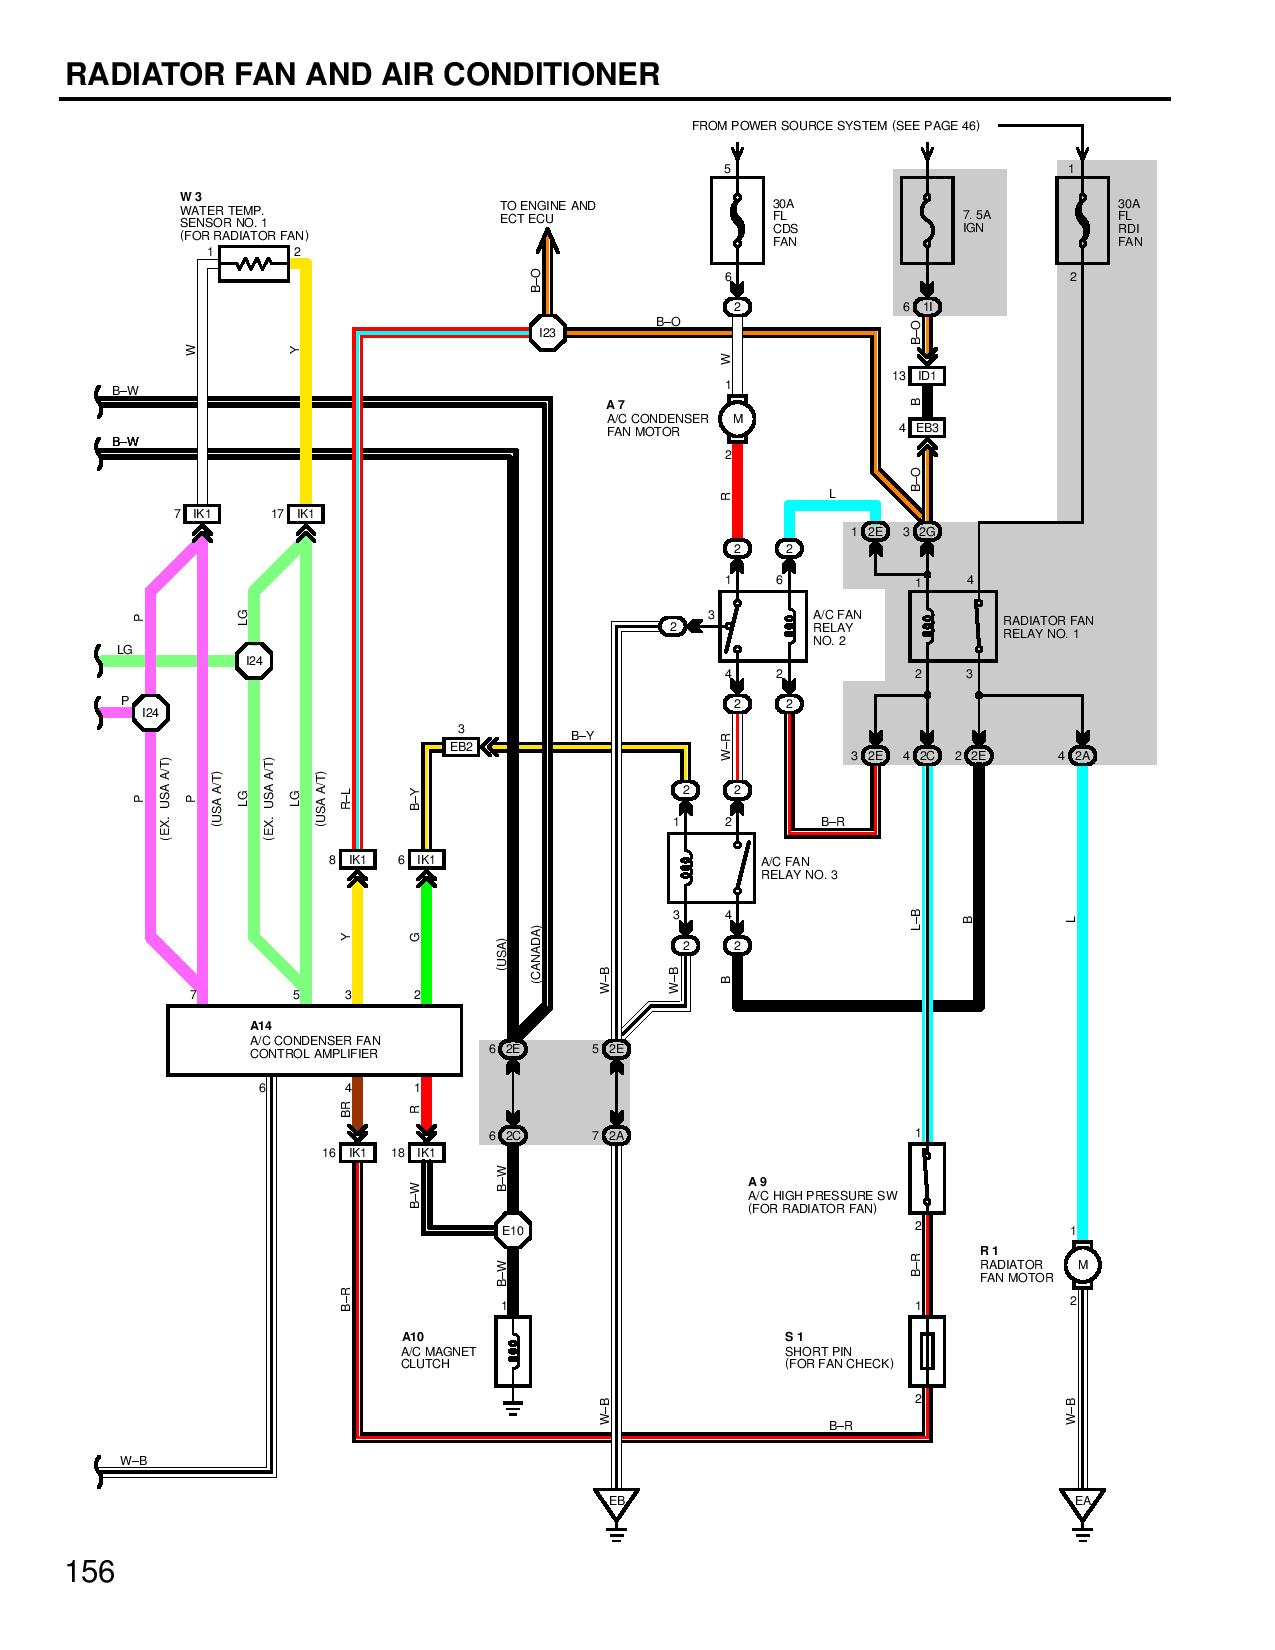 wiring diagram daihatsu mira l6 | wiring diagram daihatsu move wiring diagram #6